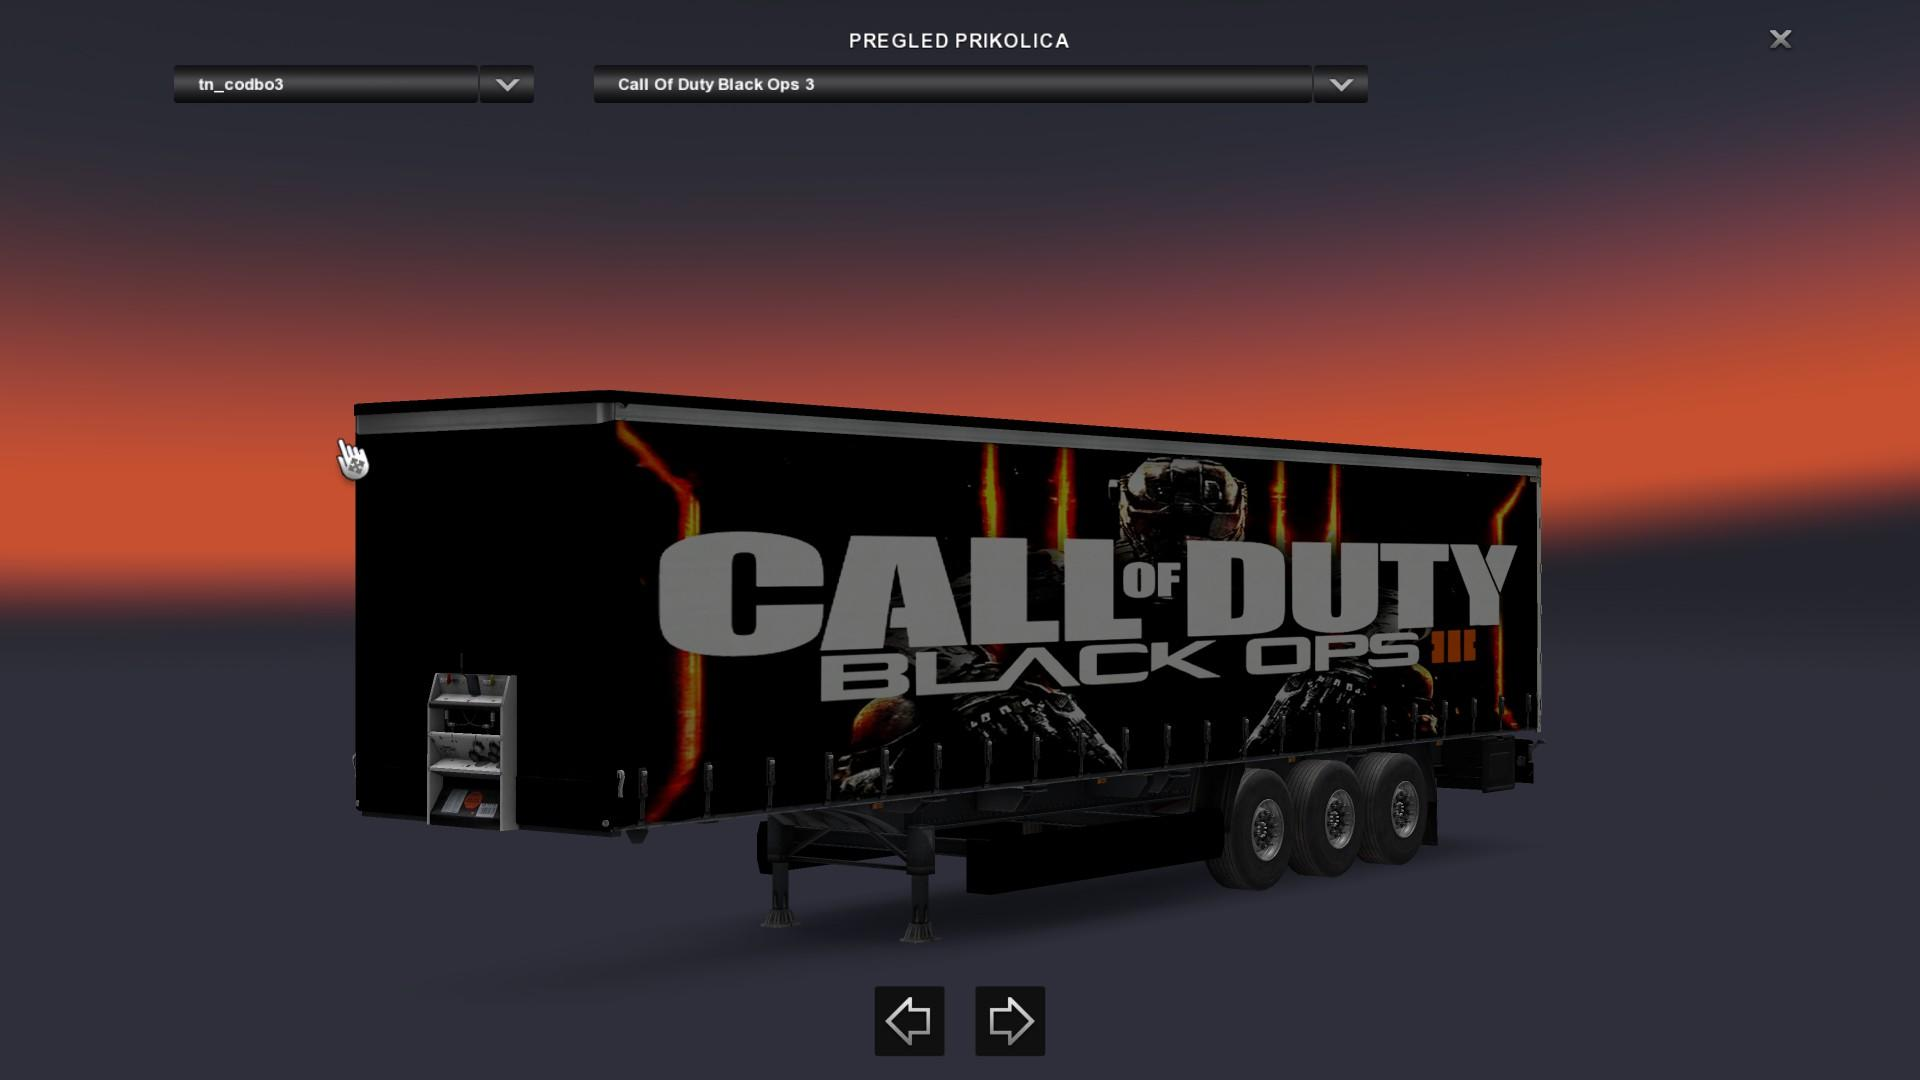 Special Ops Truck >> Call Of Duty Black Ops 1,2,3 Trailer Pack v1 - Modhub.us